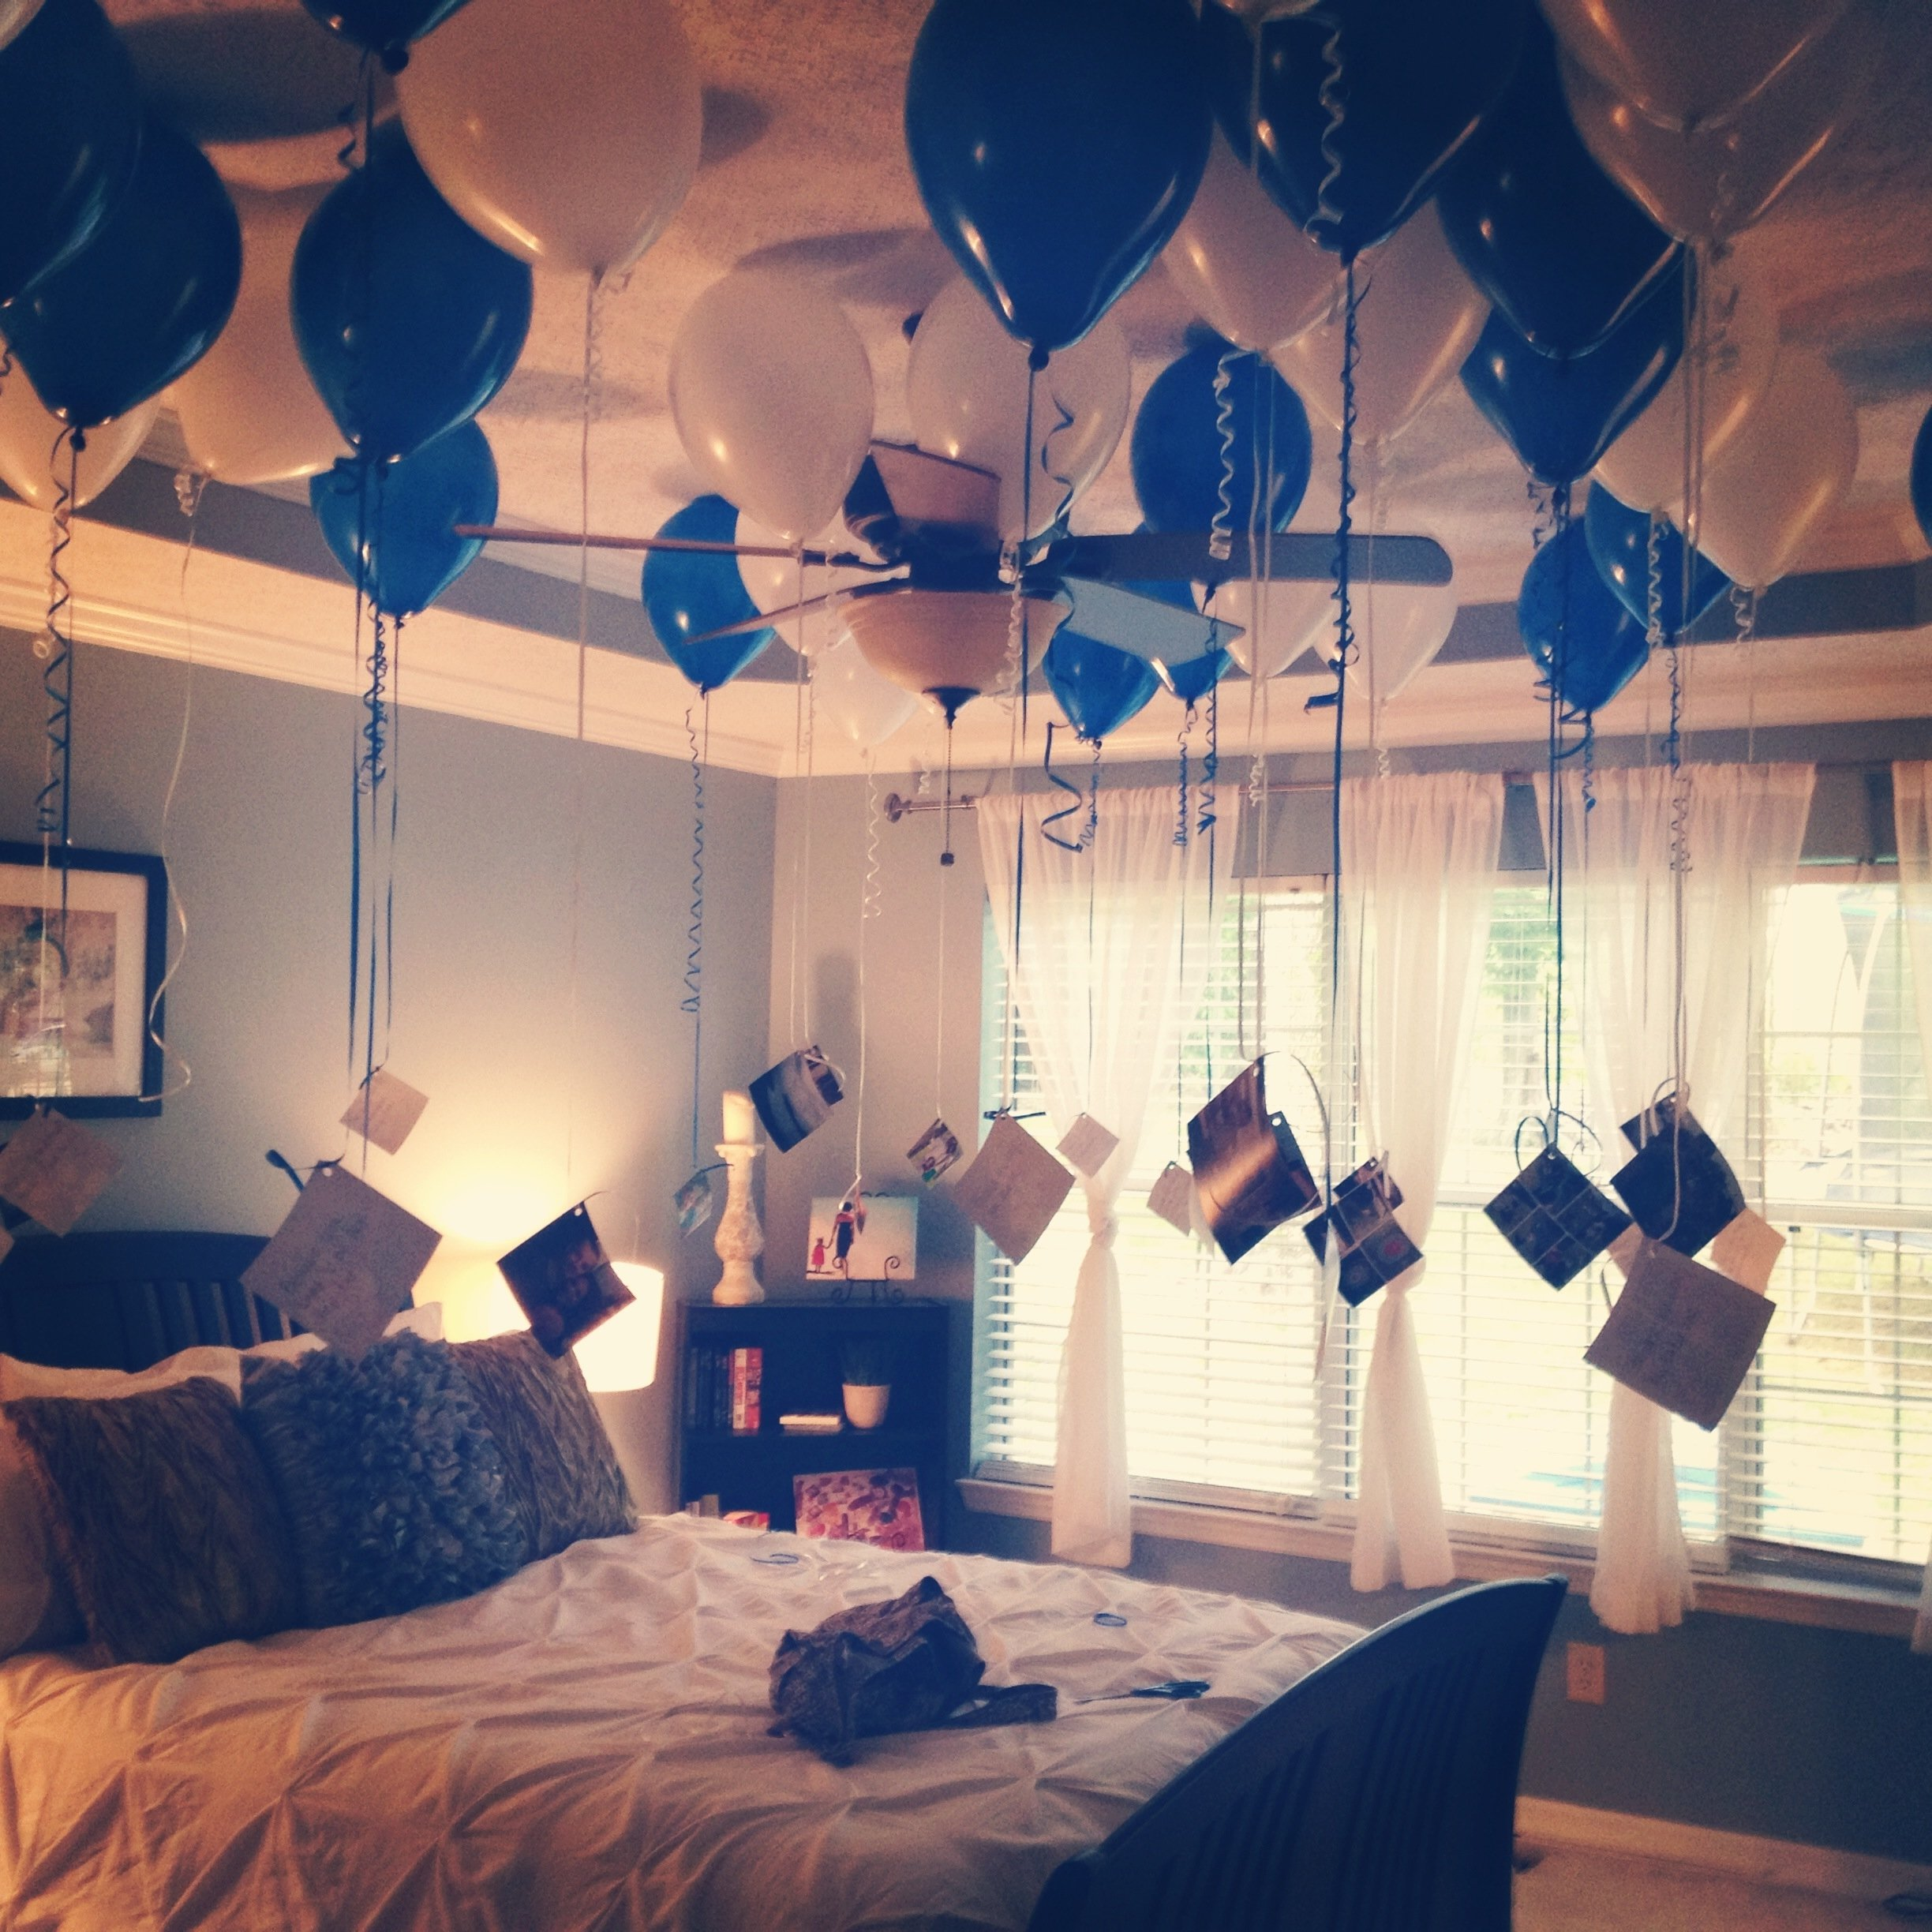 boyfriend's 35th birthday. 35 balloons, 35 pictures, with 35 reasons